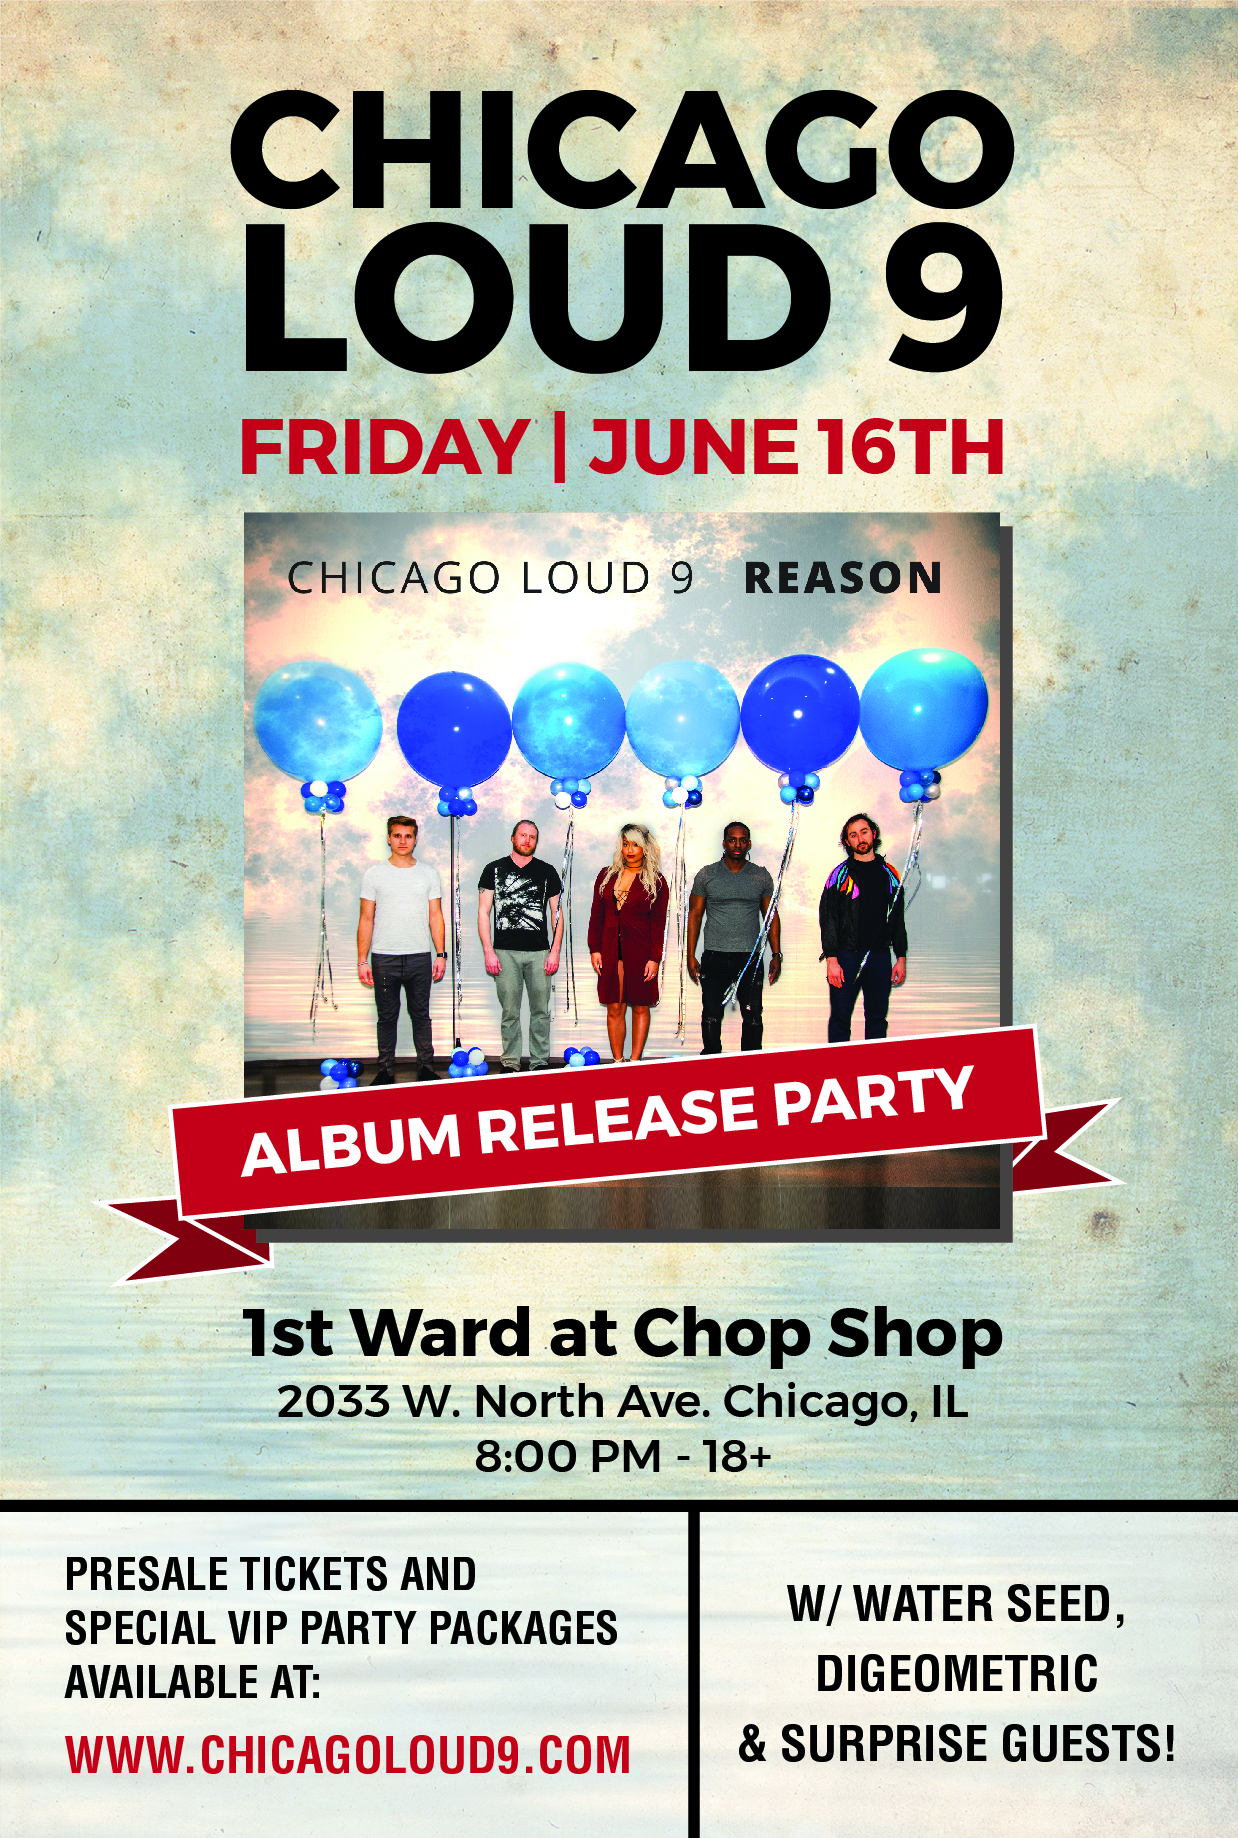 Album Release Party Poster Chicago Loud 9